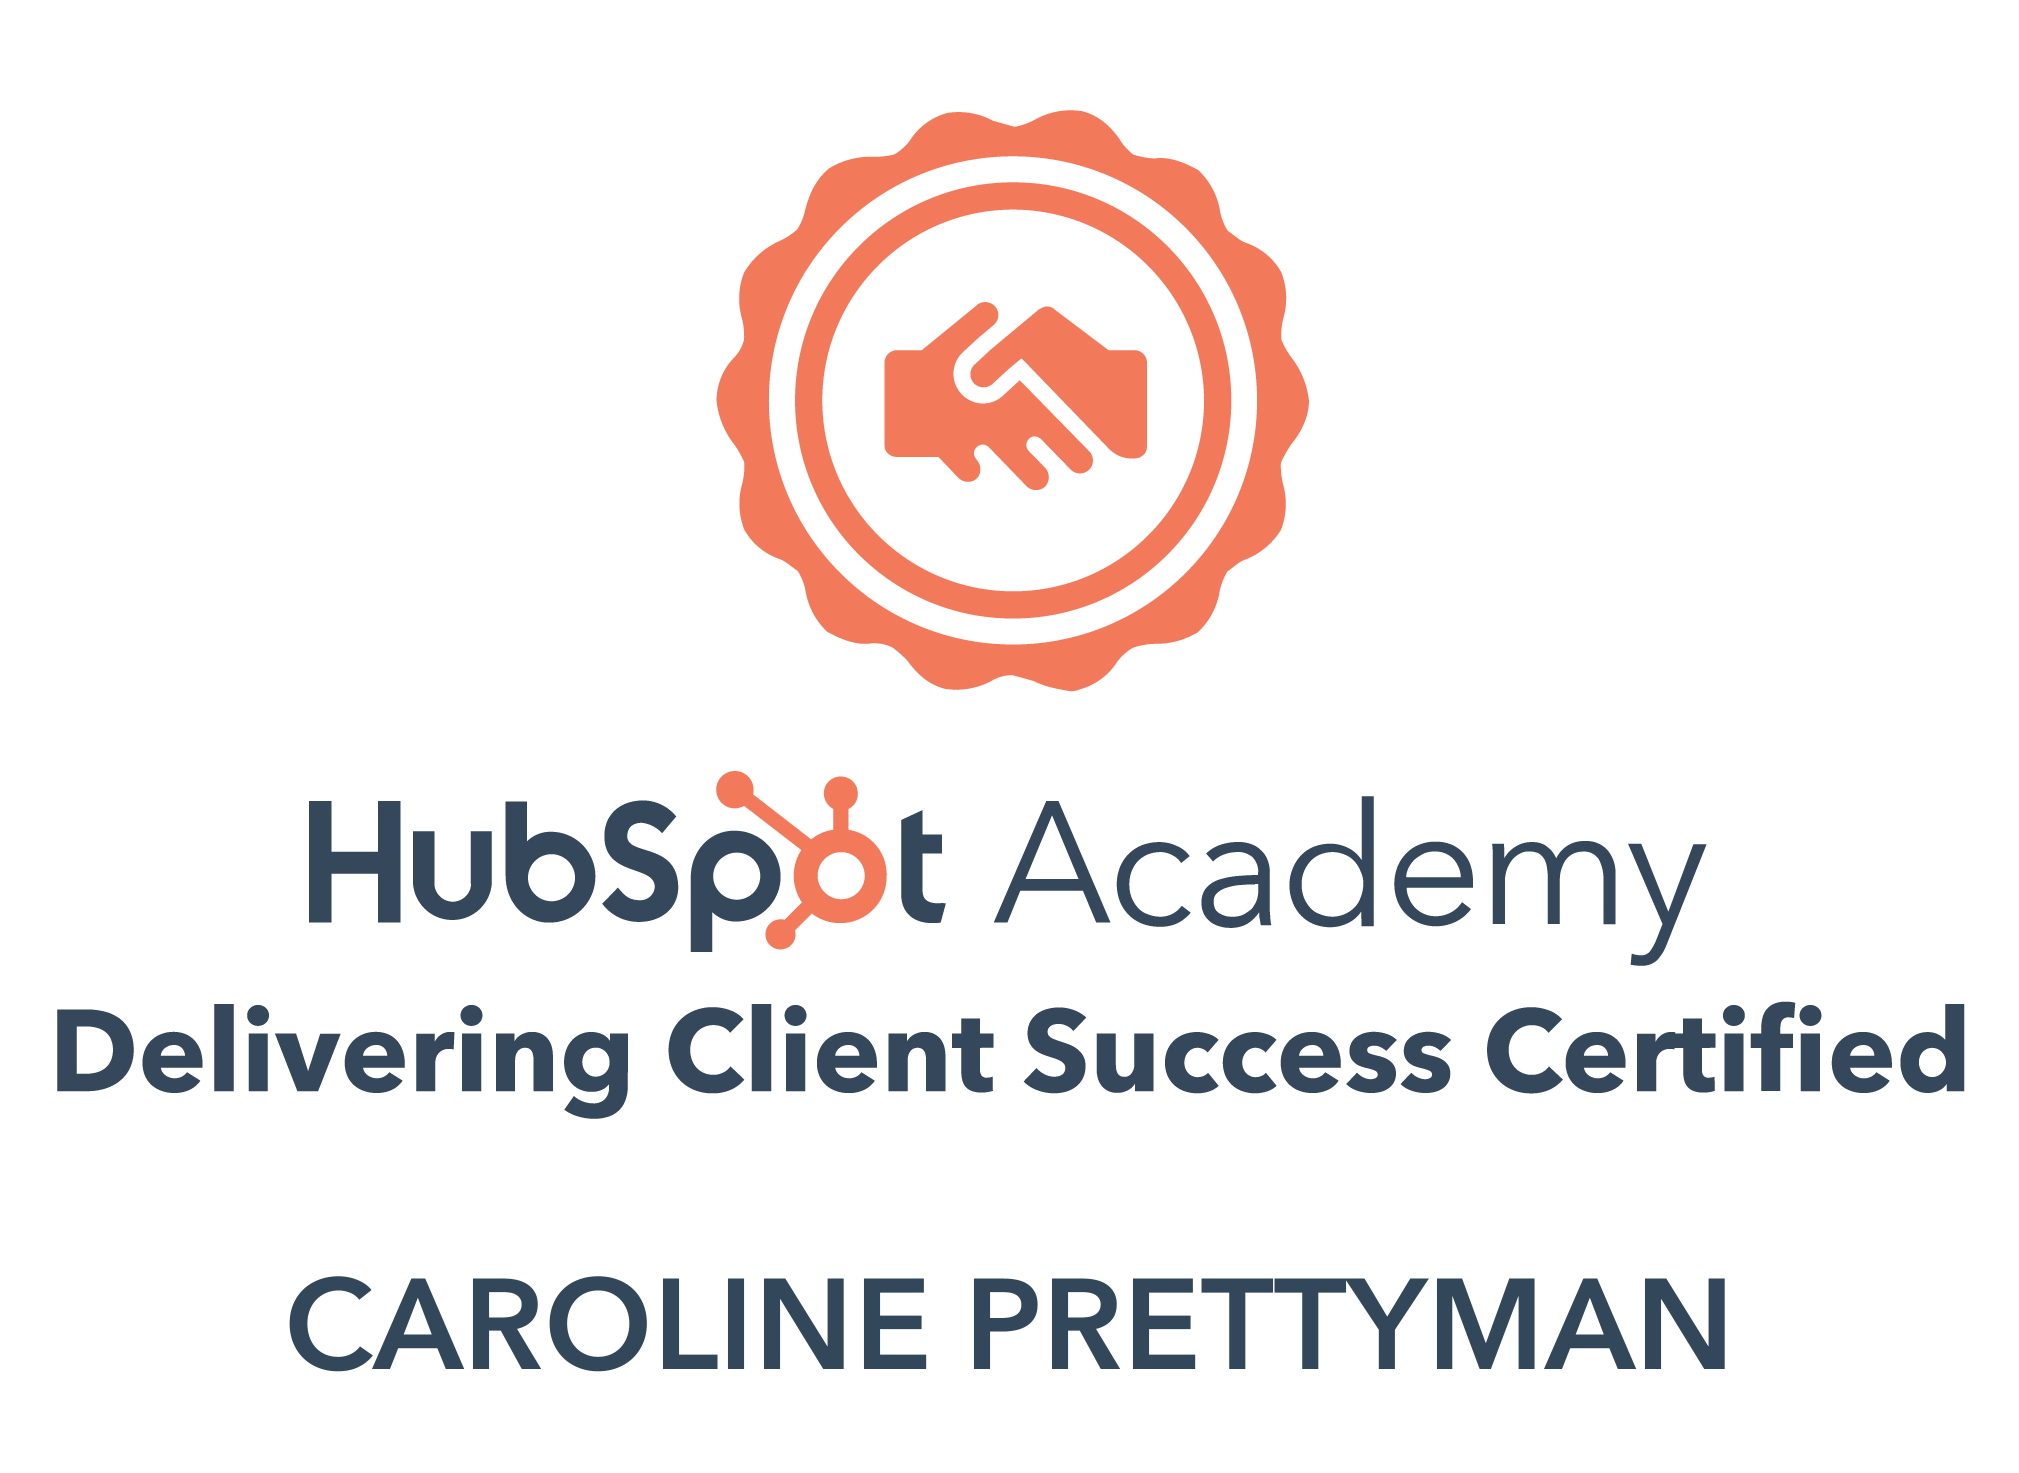 Delivering Client Success Certified